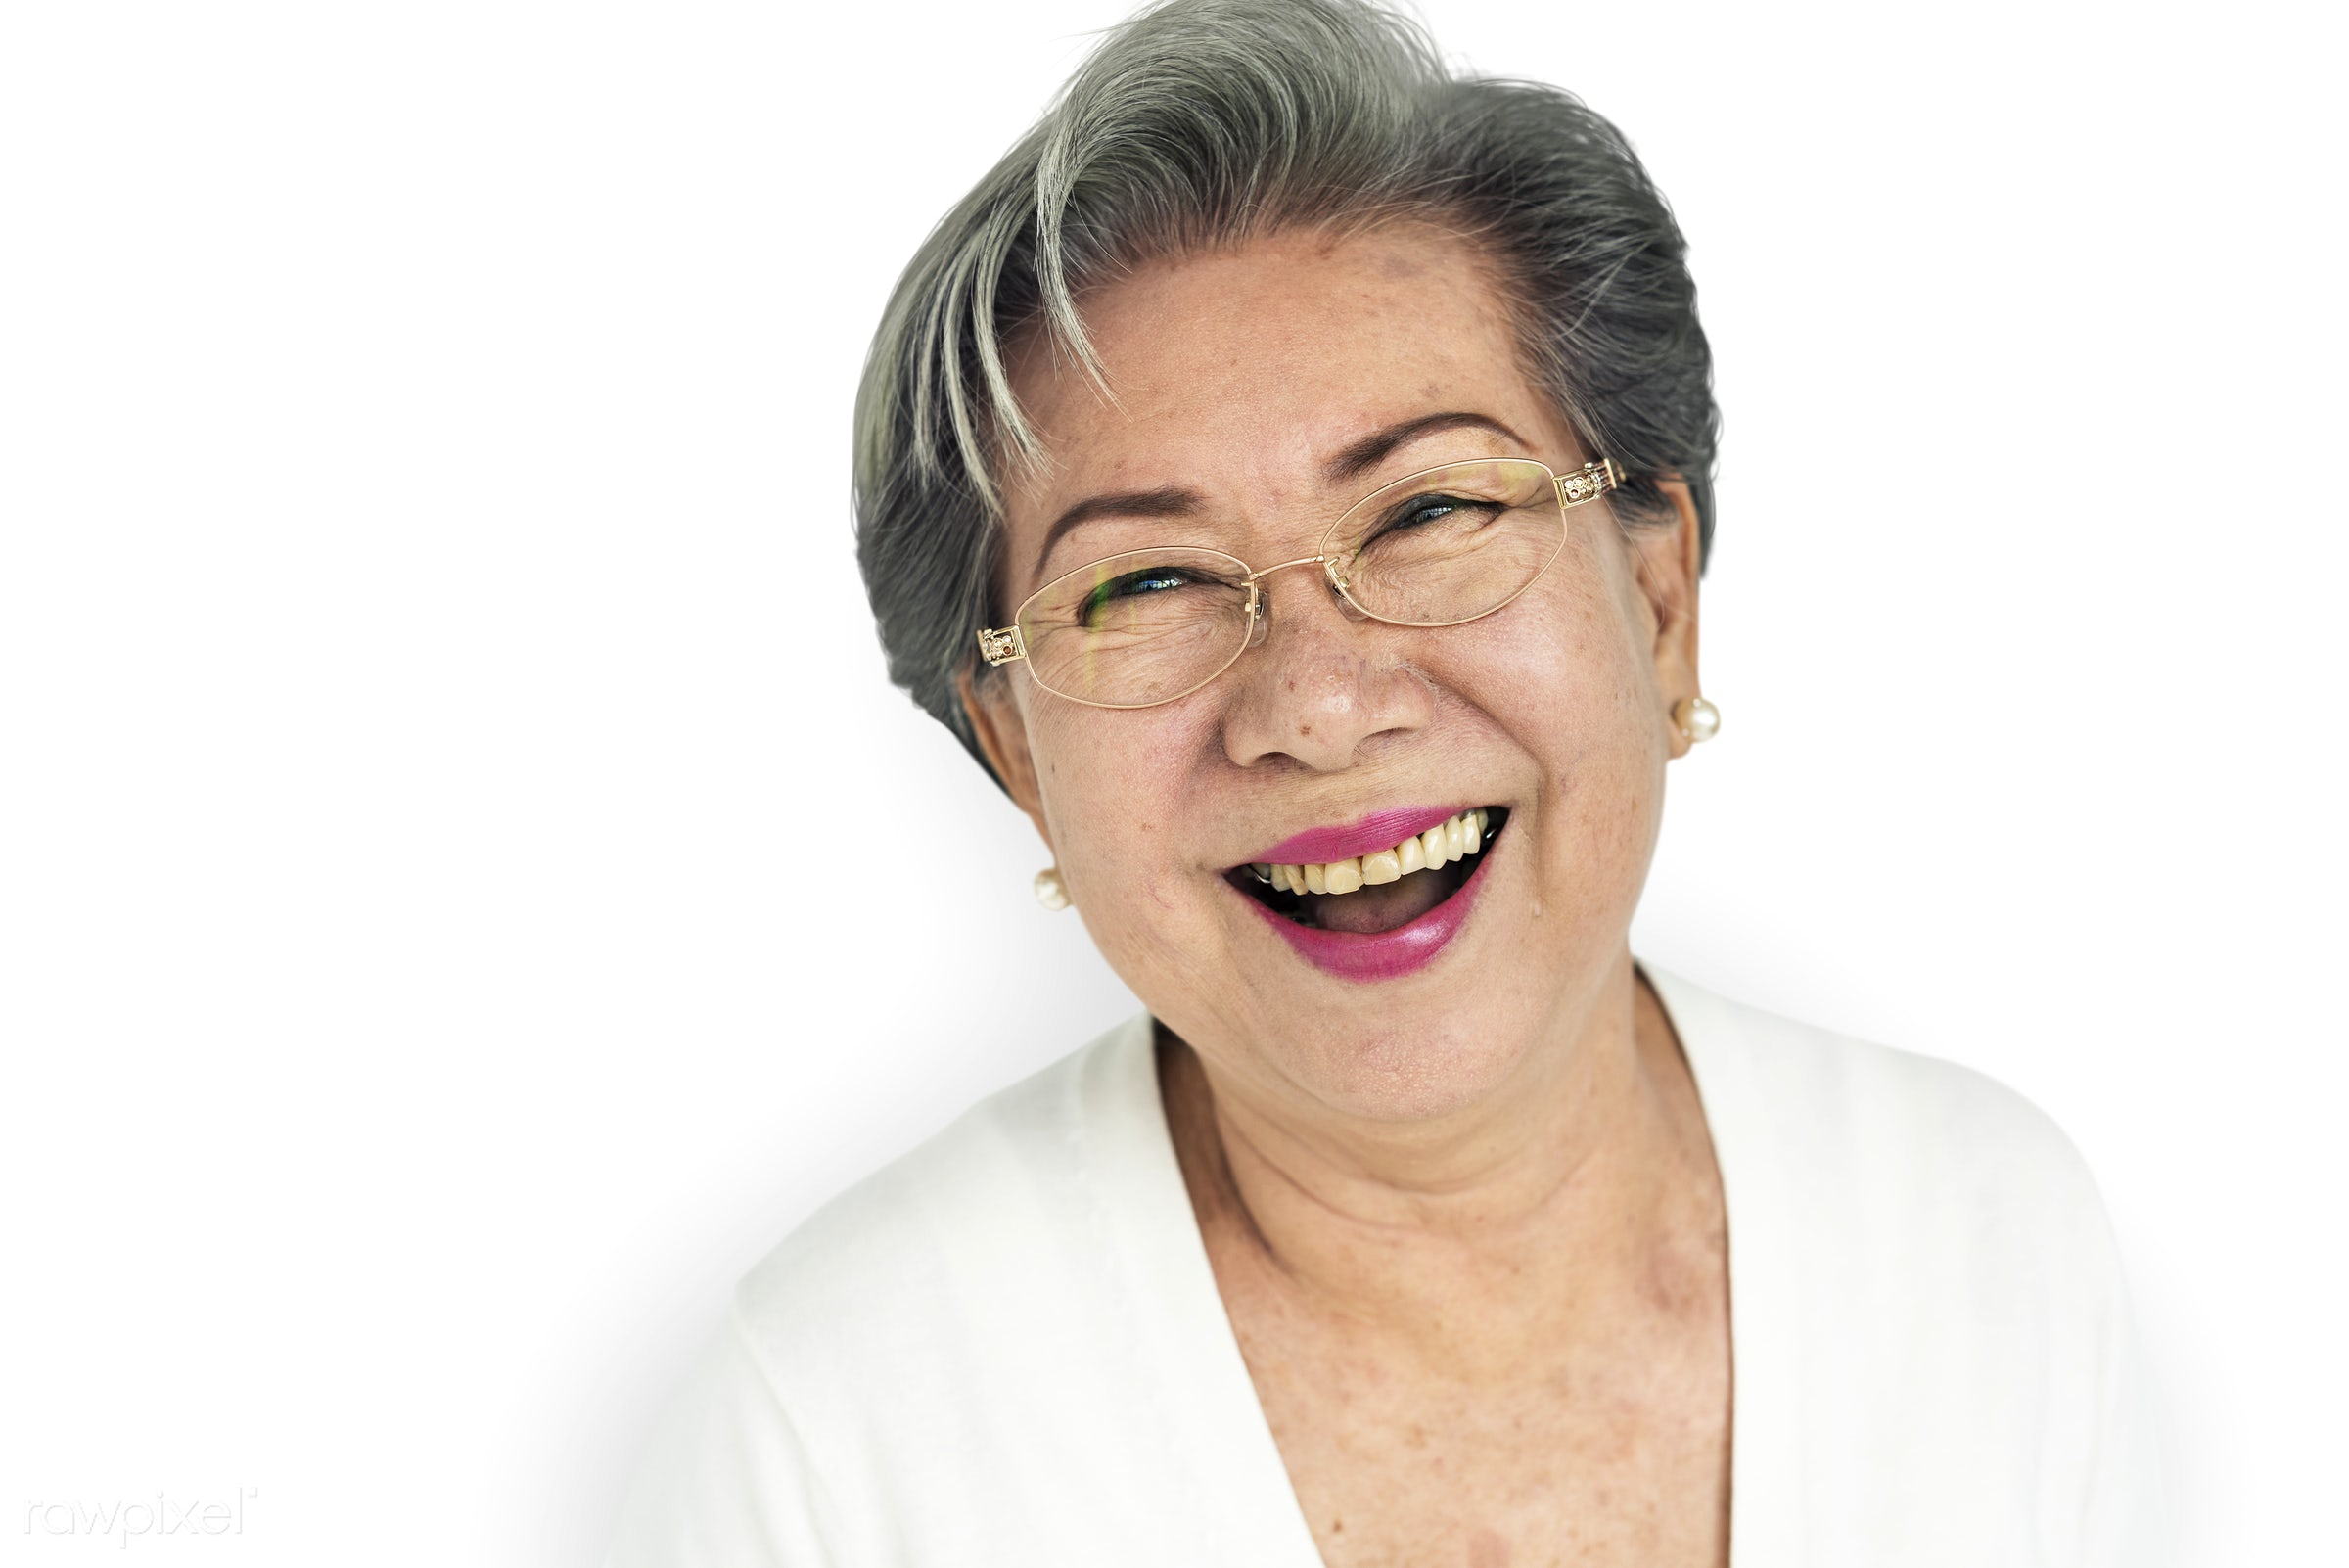 expression, studio, old, person, glasses, isolated on white, people, laughing, woman, happy, casual, cheerful, smiling,...